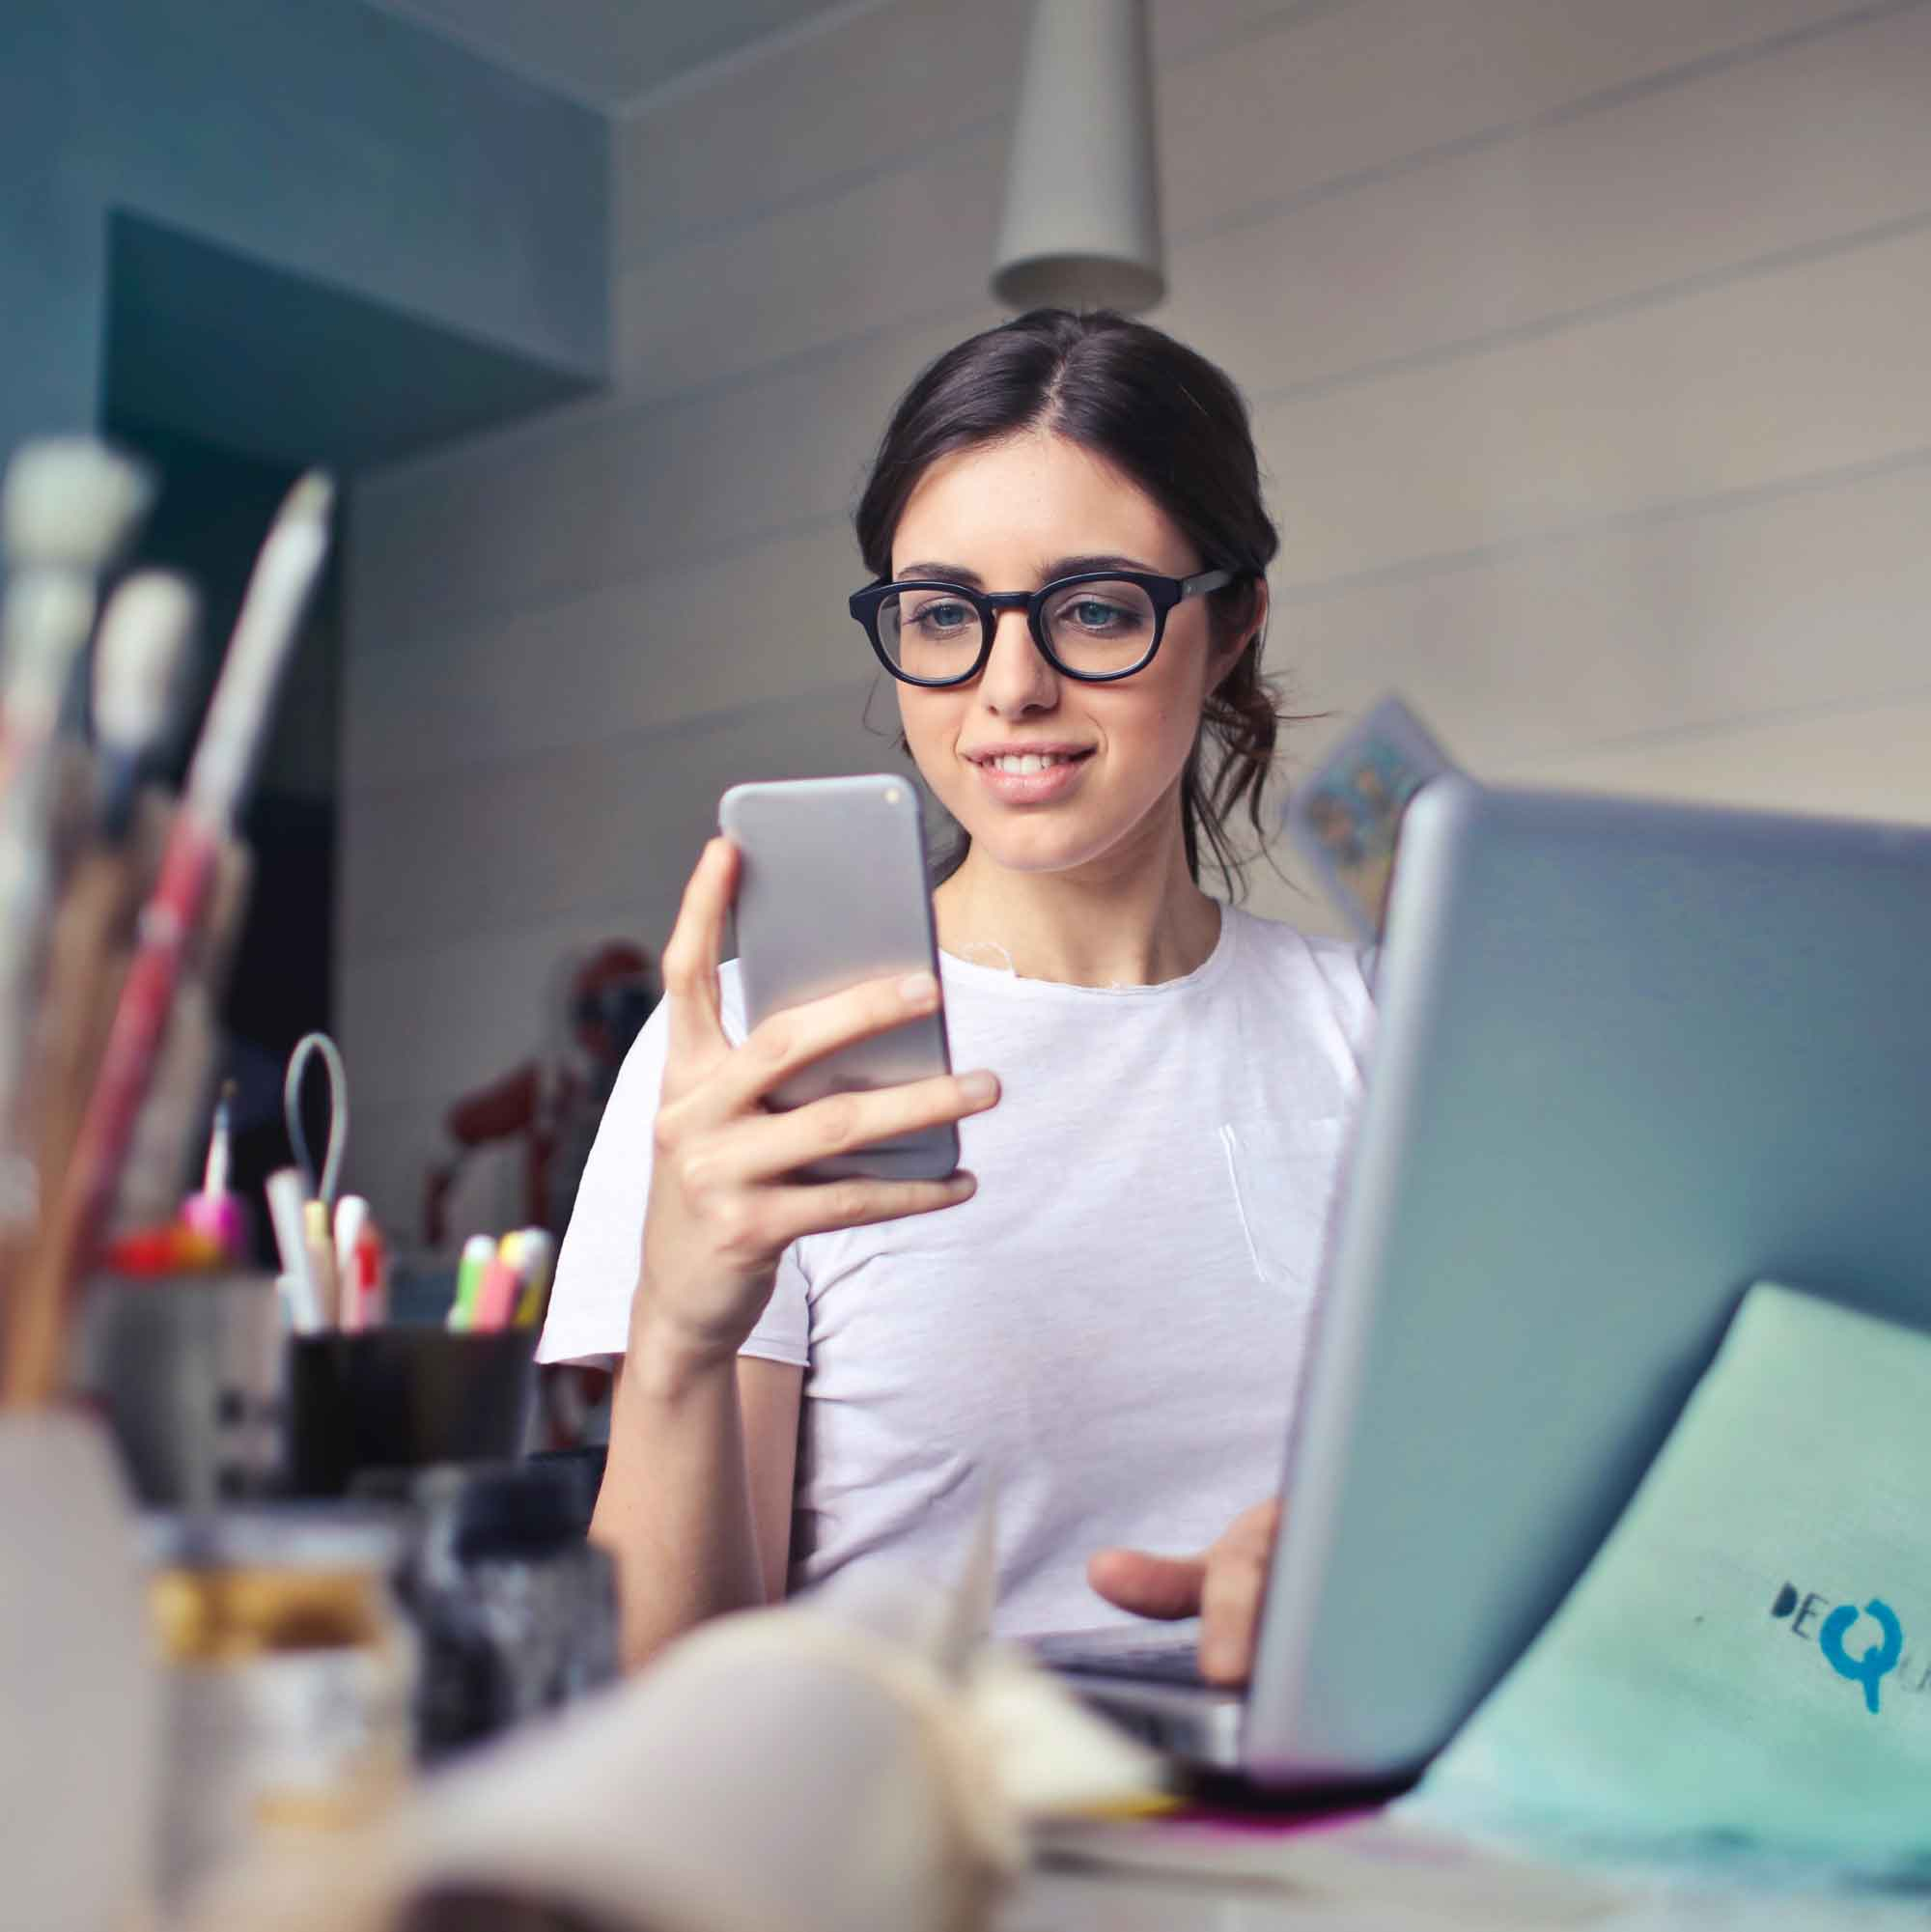 Woman sat at desk reading a guide to small business websites on her phone